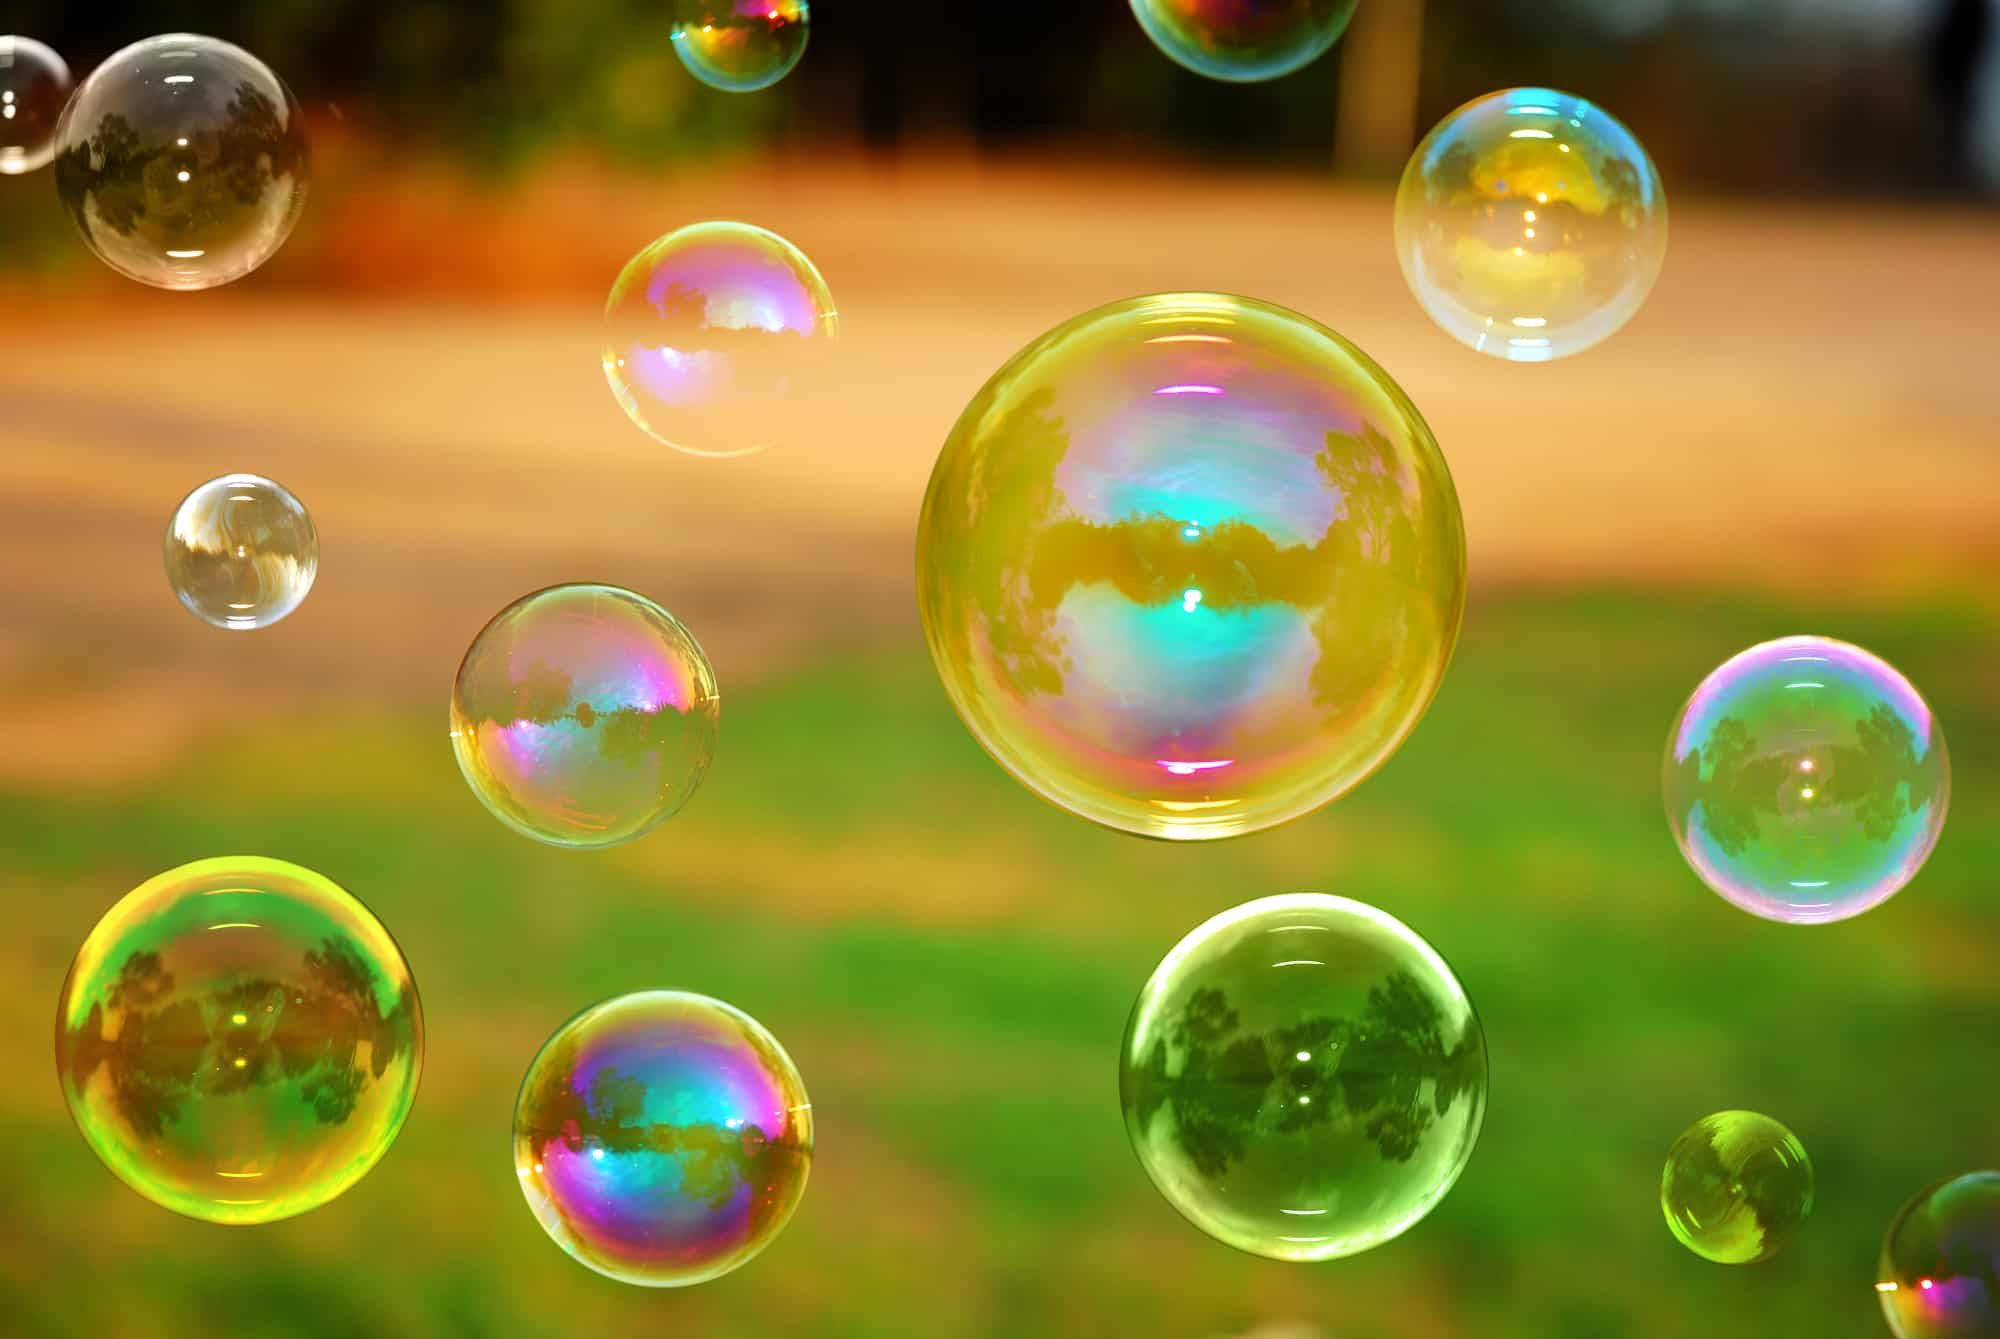 Investing in collectibles: bubbles floating in the air.